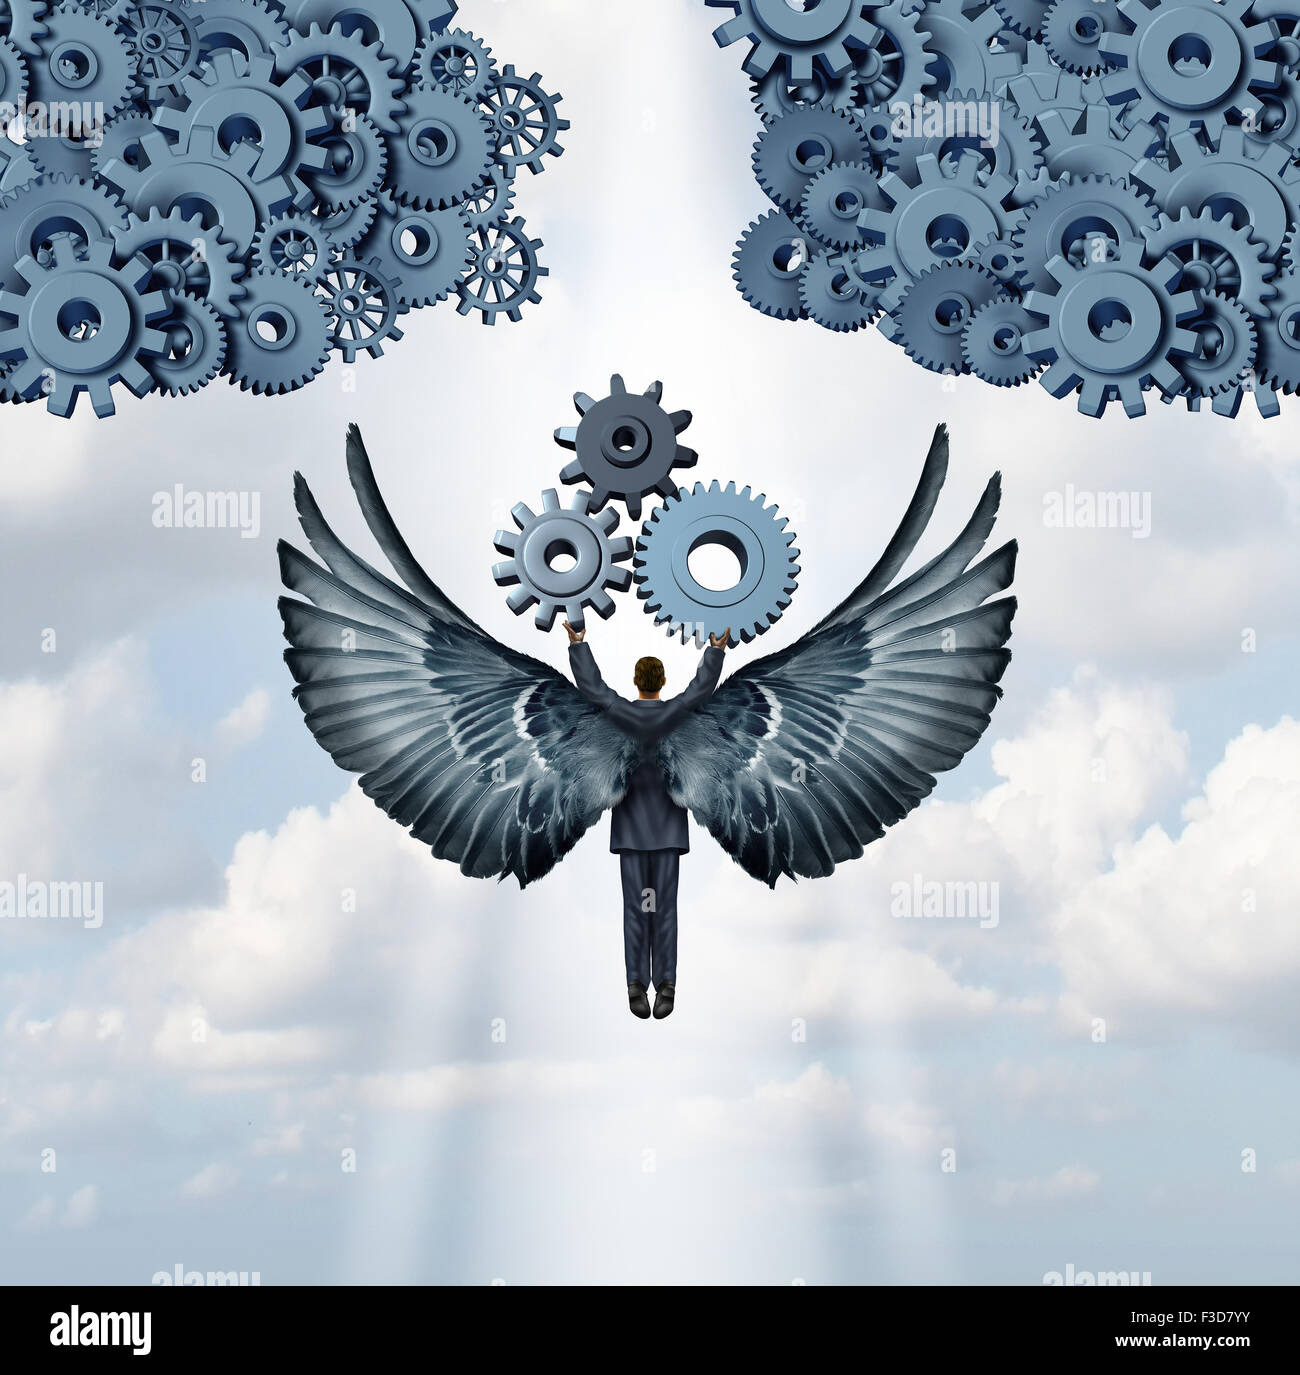 Business angel investor concept and entrepreneur venture capitalist symbol as a businessman with wings flying upward - Stock Image